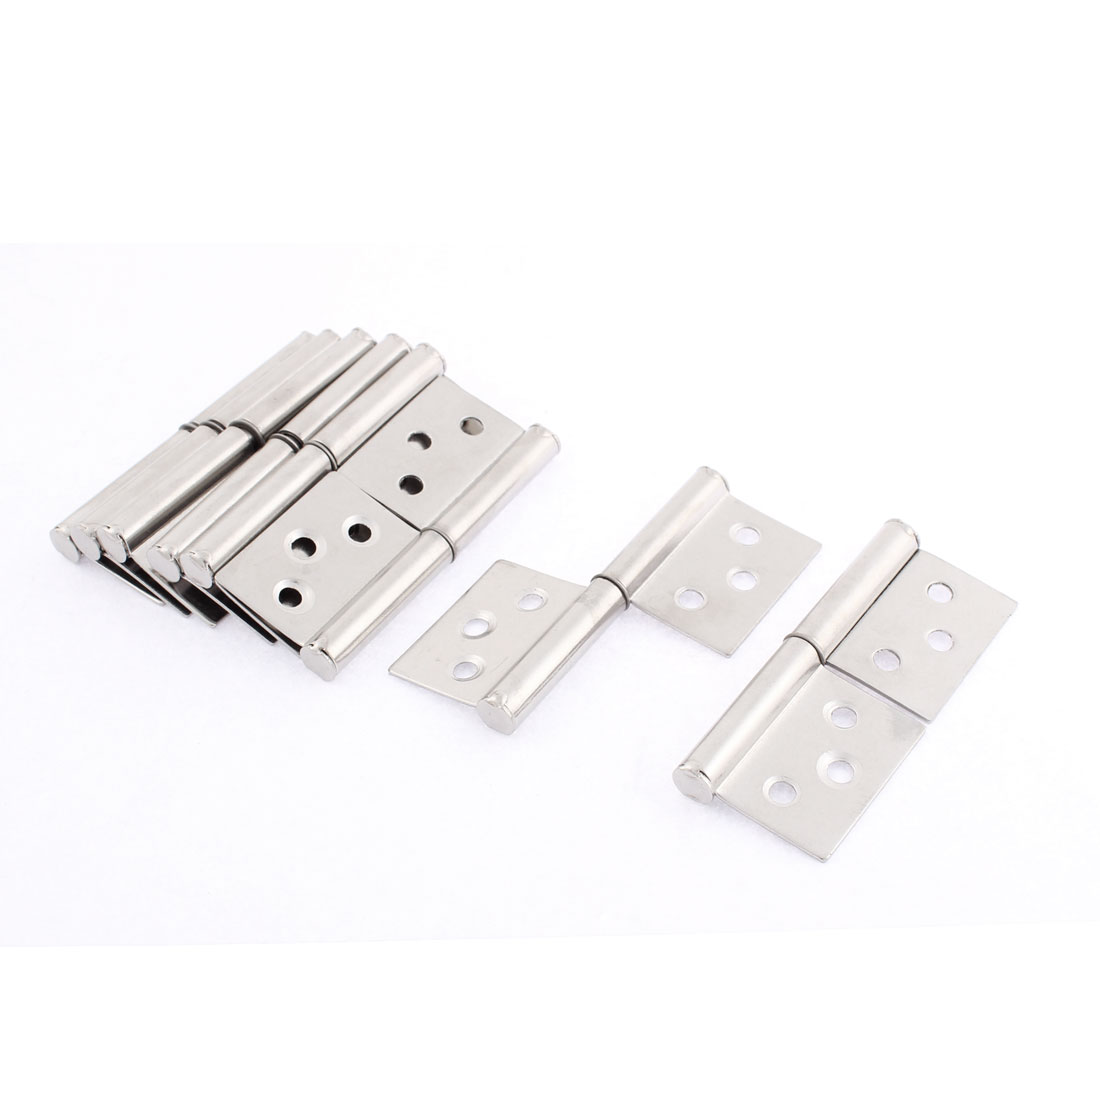 Cupboard Door 360 Degree Rotating Flag Hinges Silver Tone 3 Inch Long 8 Pcs